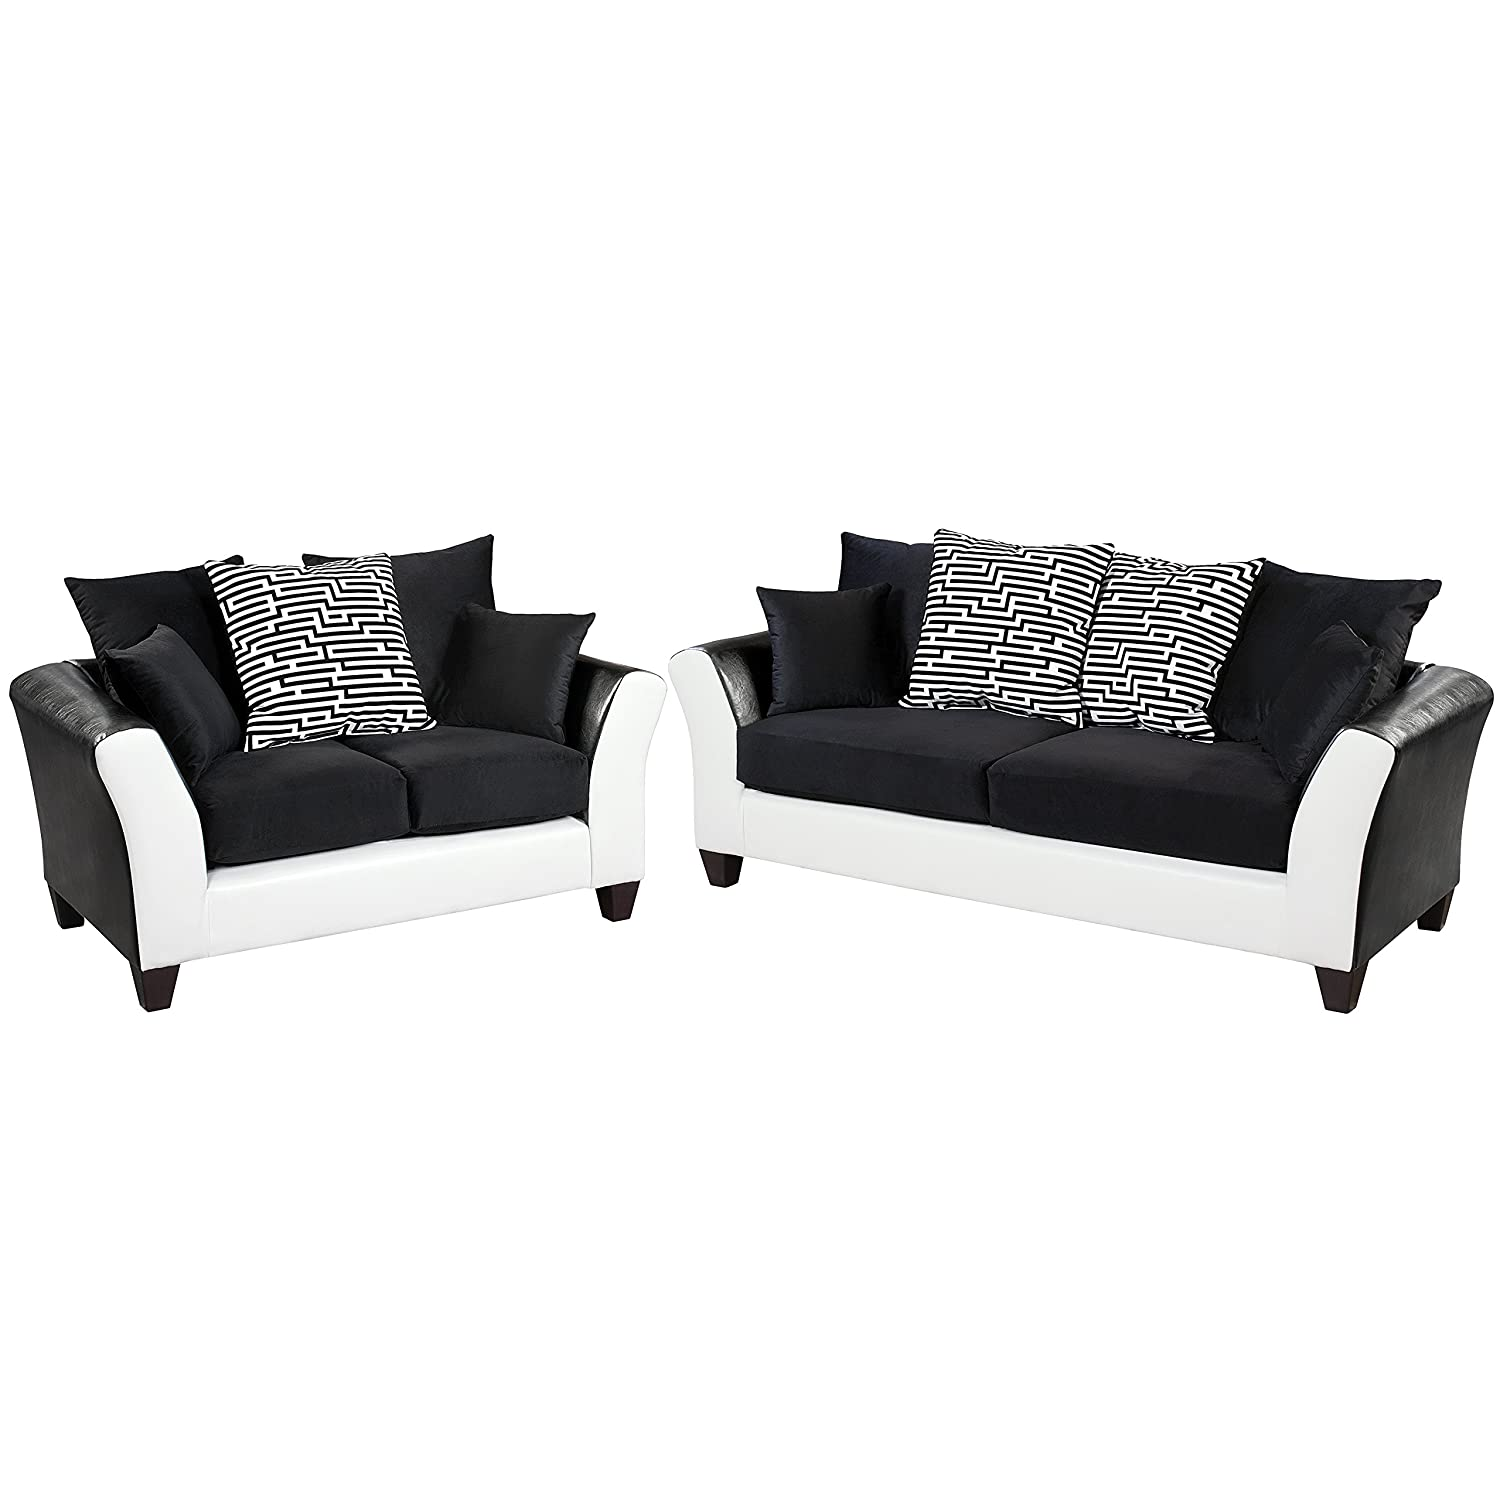 Flash Furniture RS-4173-02LS-SET-GG Riverstone Implosion Velvet Living Room Set - Black